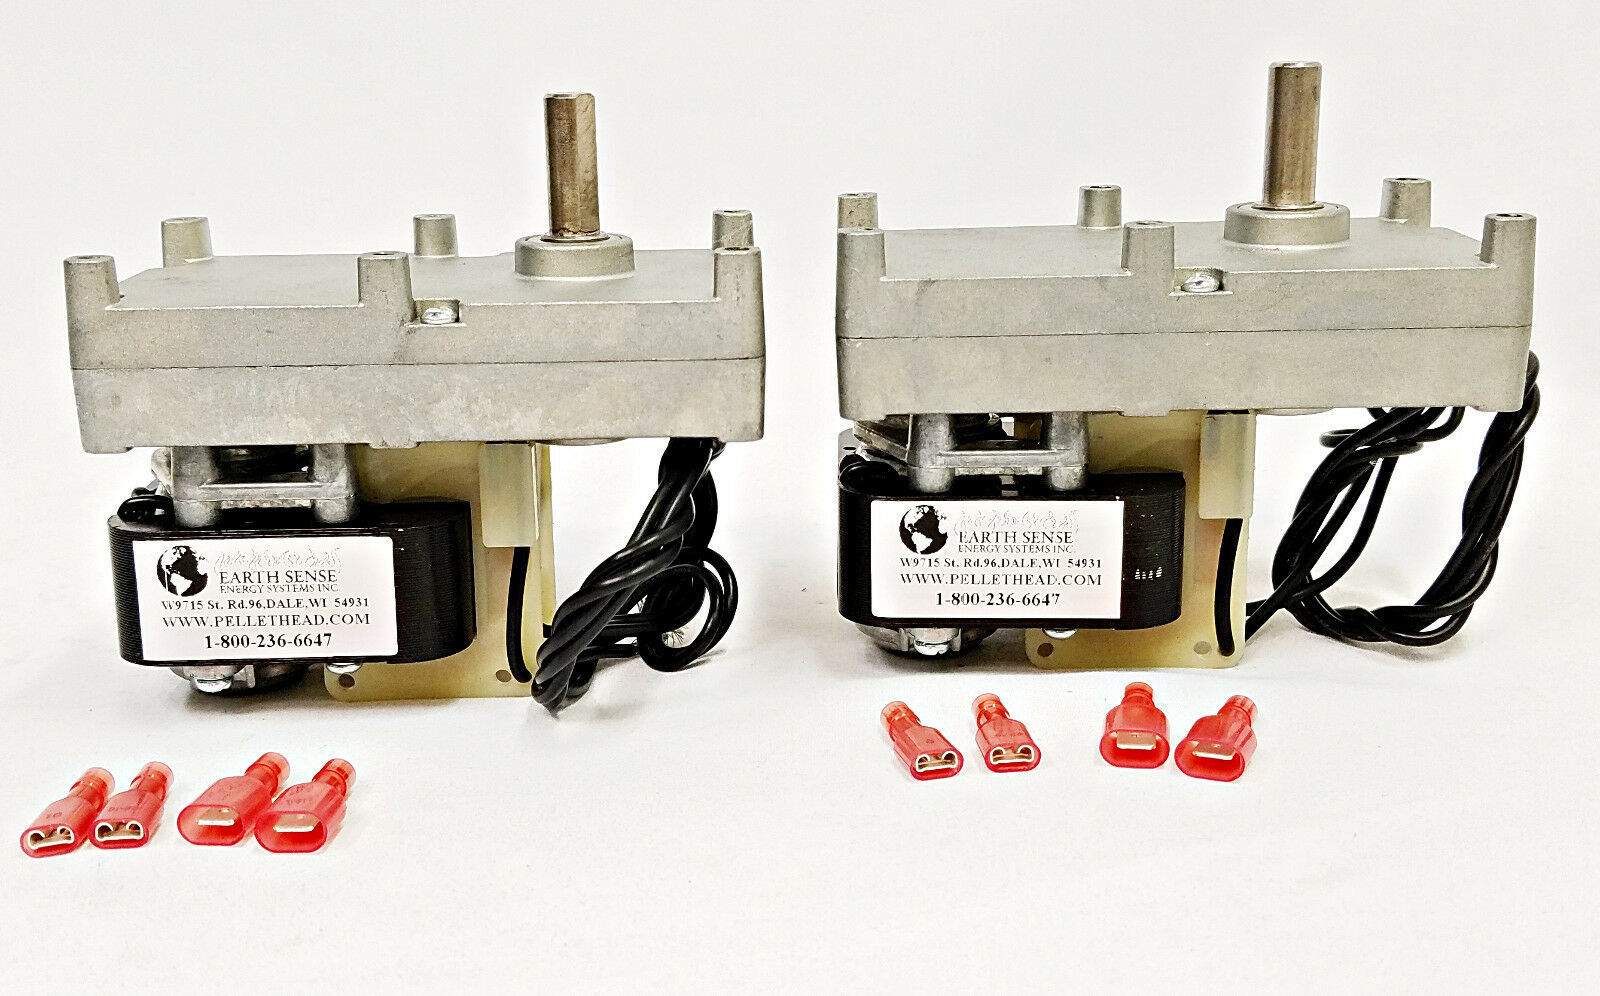 Whitfield Auger Motor Pellet Stove Feed Fuel Motor H5886